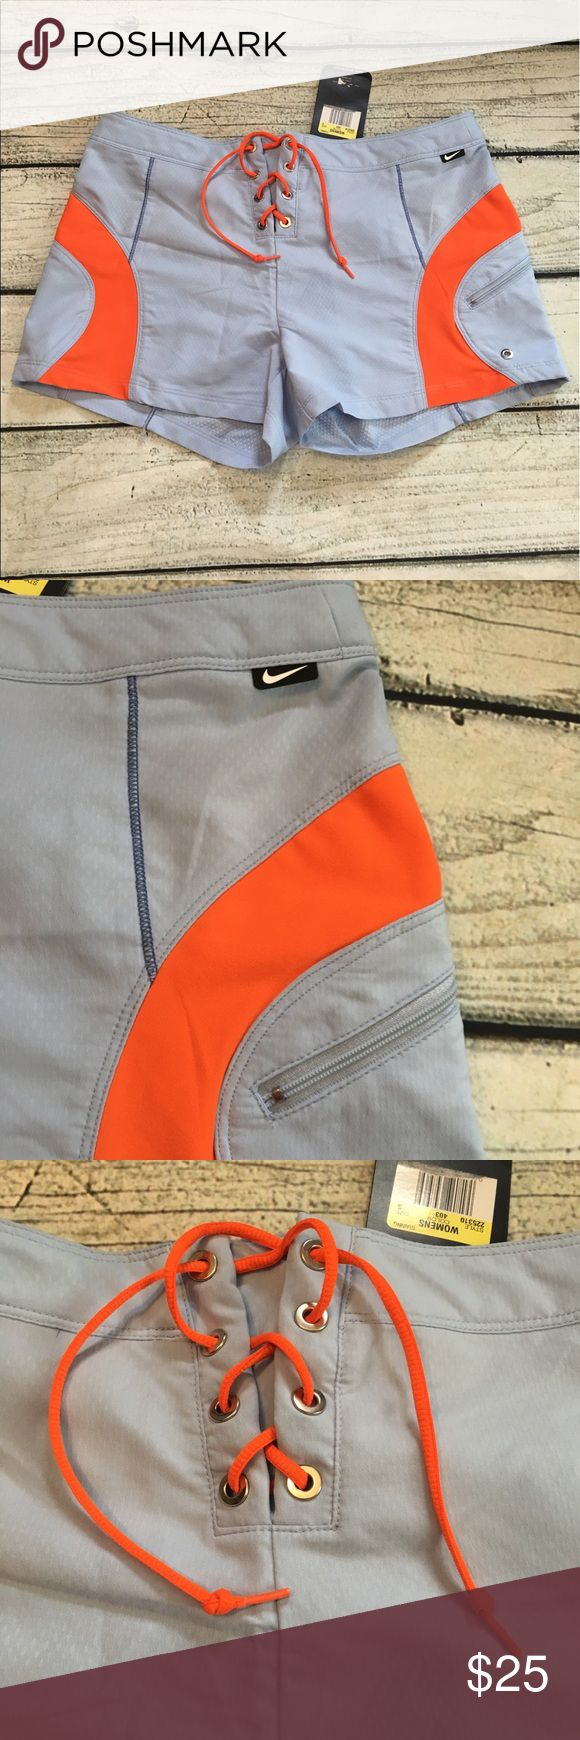 NWT Nike sphere dry light blue orange shorts S NWT Nike sphere dry woman's light blue and orange board shorts lace up string front has side zipper pocket size small see measurements in pictures. Nike Shorts